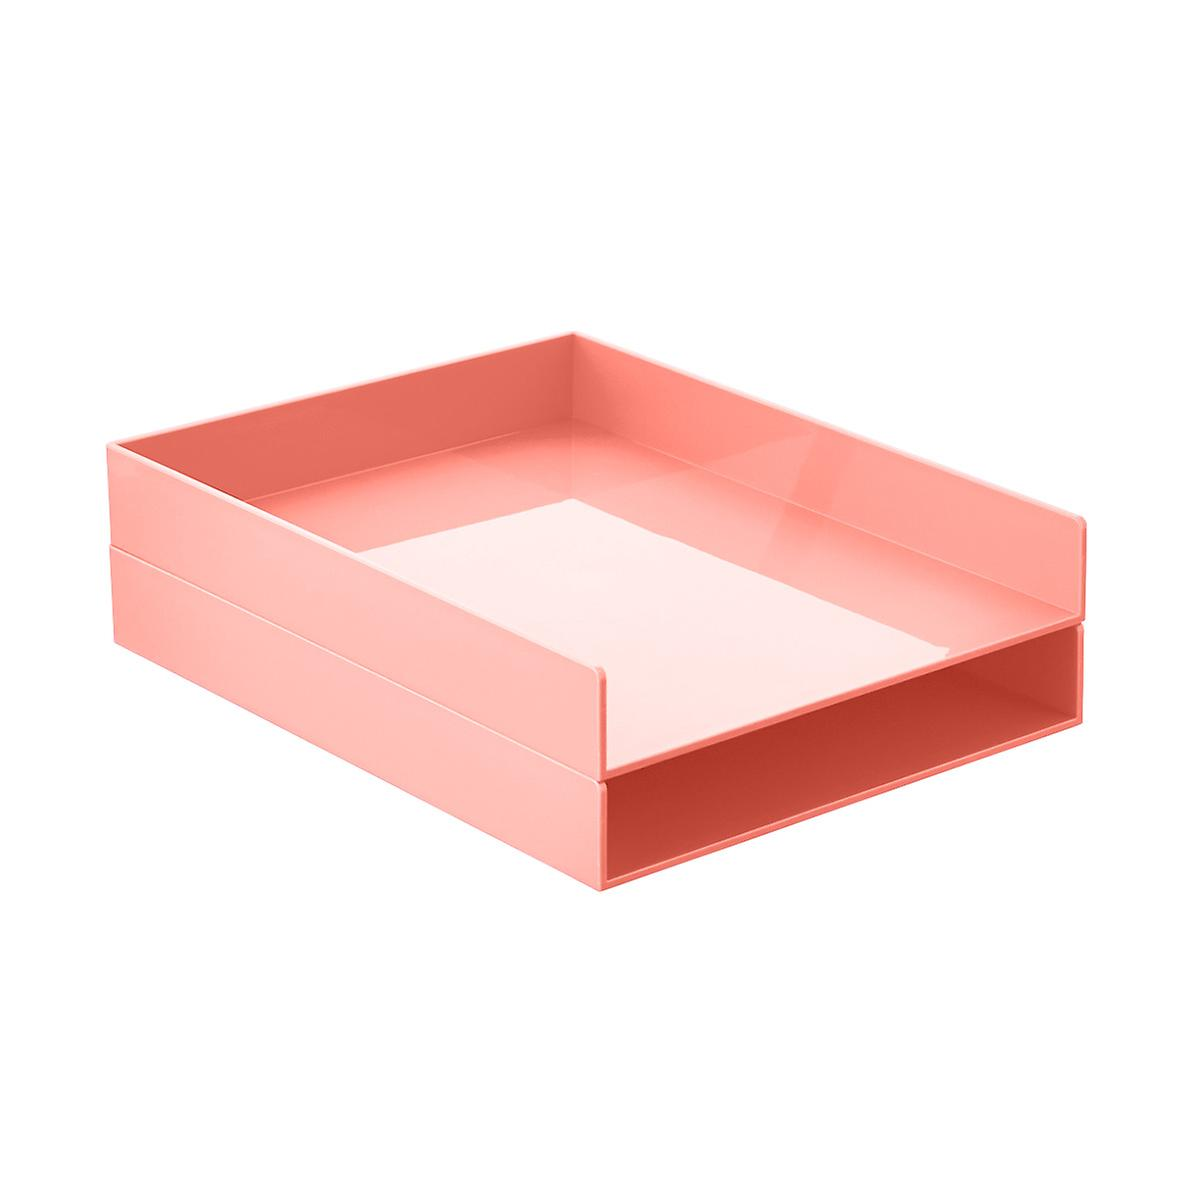 Blush Poppin Stackable Letter Tray | The Container Store